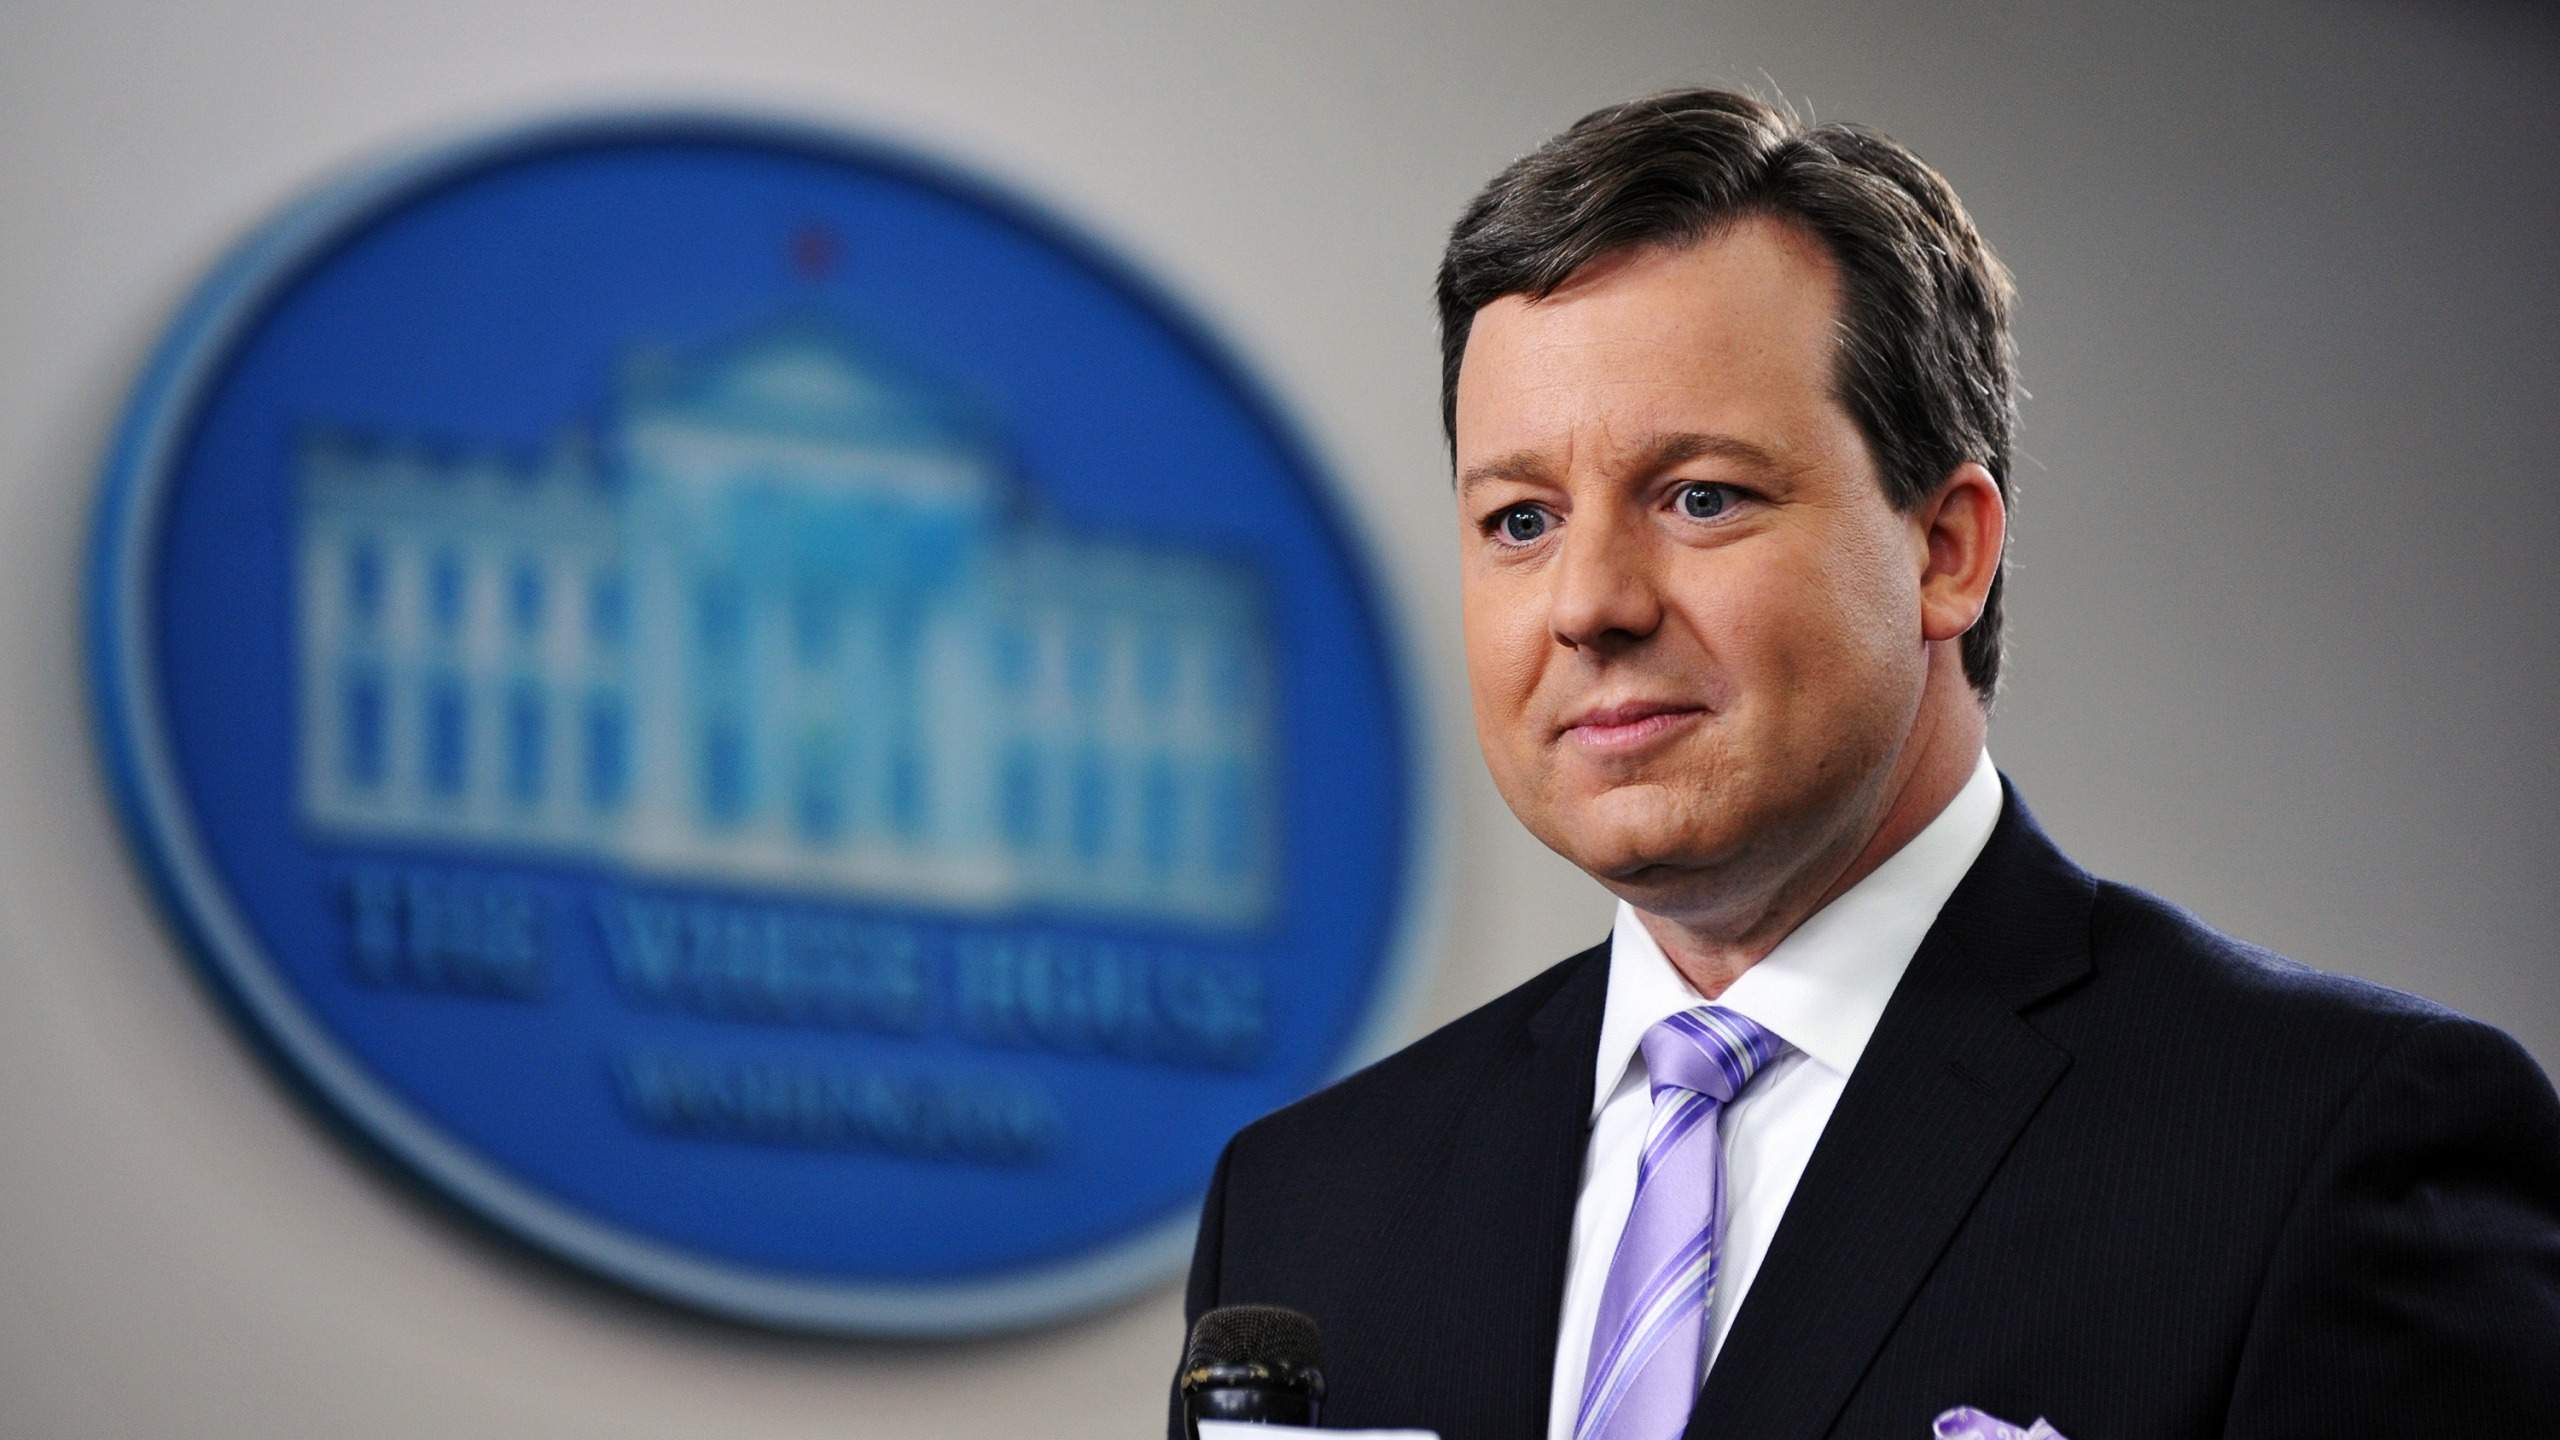 Fox News White House correspondent Ed Henry prepares to do a stand-up December 8, 2011 in the Brady Briefing Room of the White House in Washington, DC. (MANDEL NGAN/AFP via Getty Images)